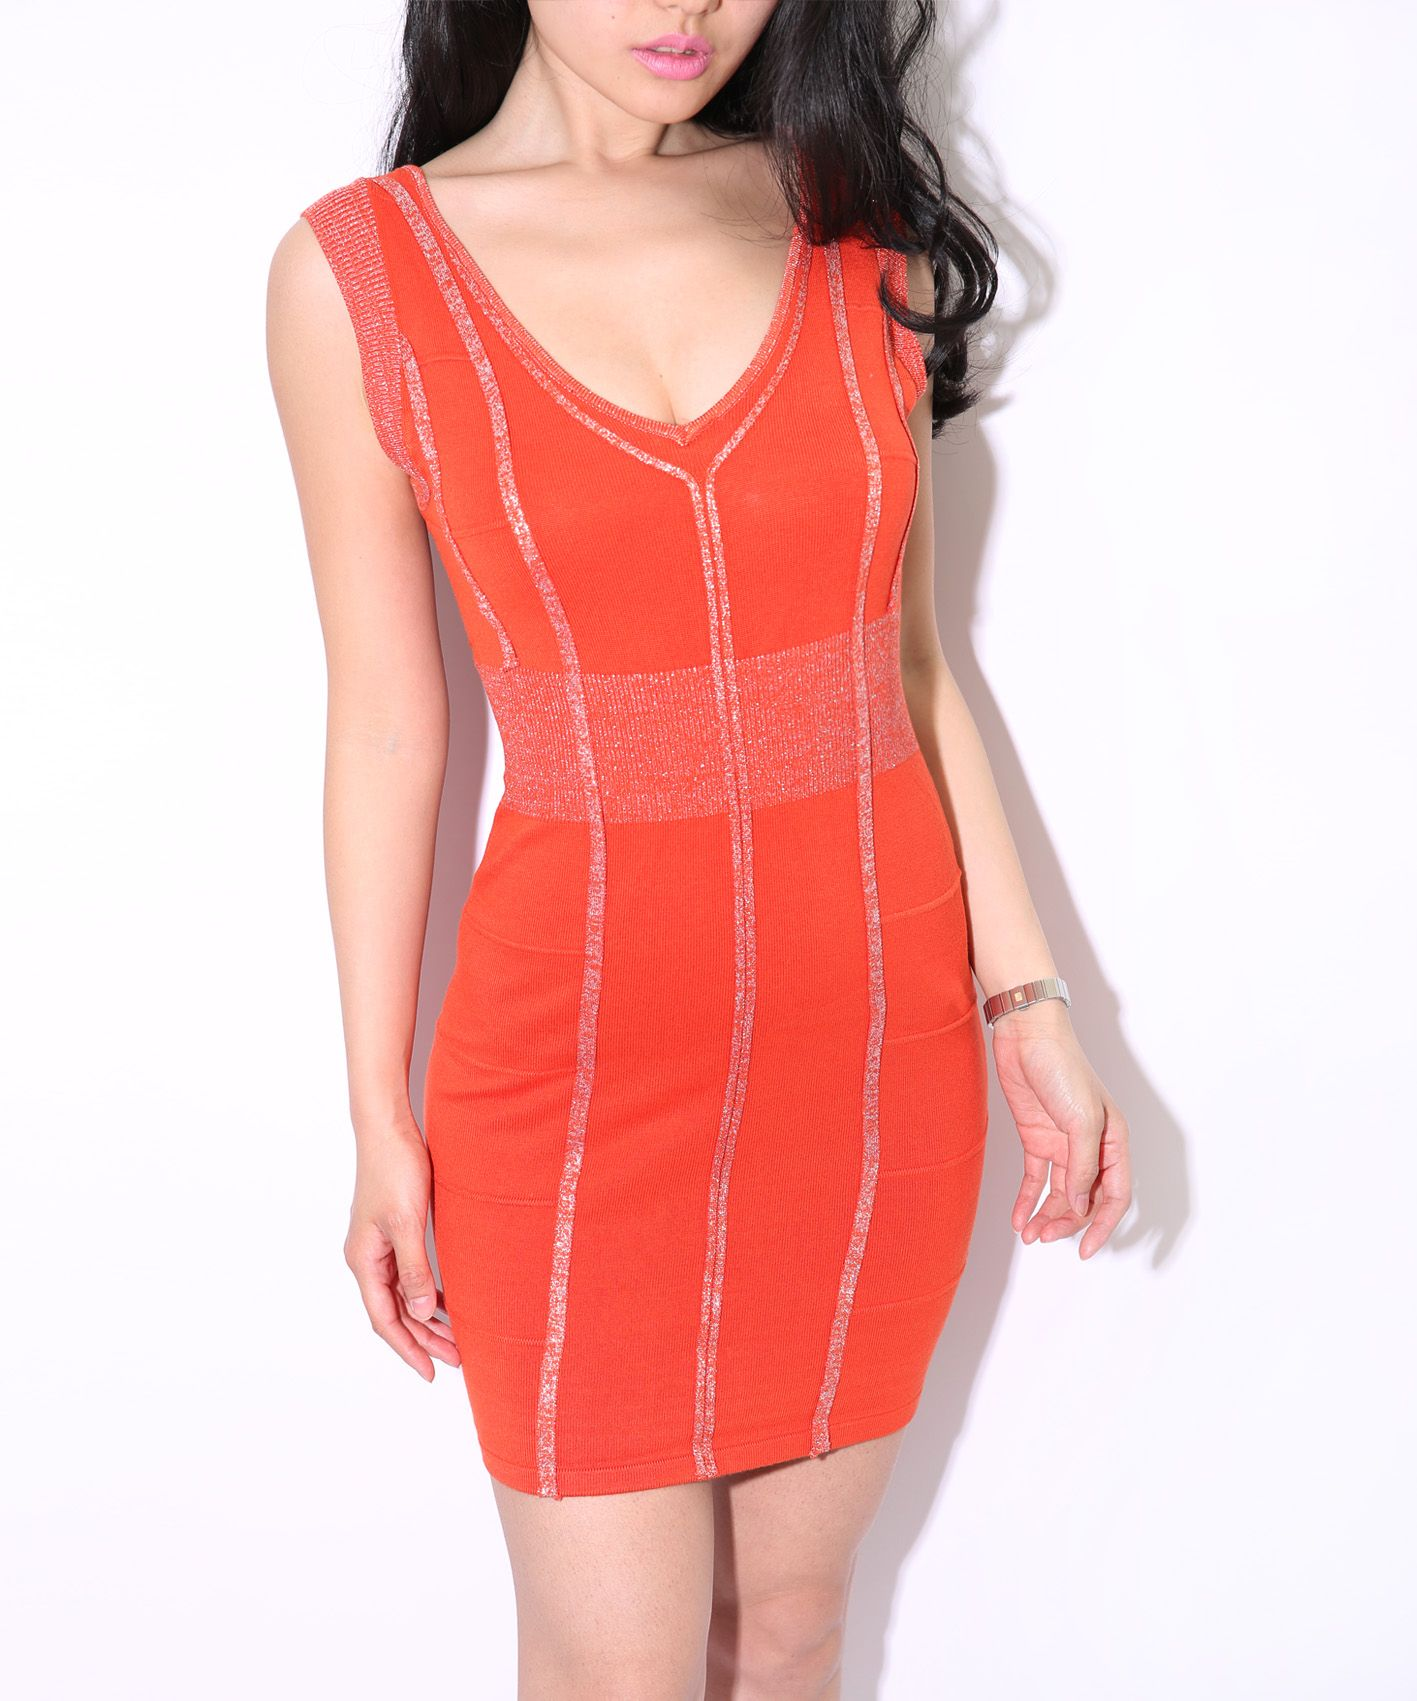 sexy Knitted Bandage Dress Women's Short Sleeve Backless lace Evening Party Dress